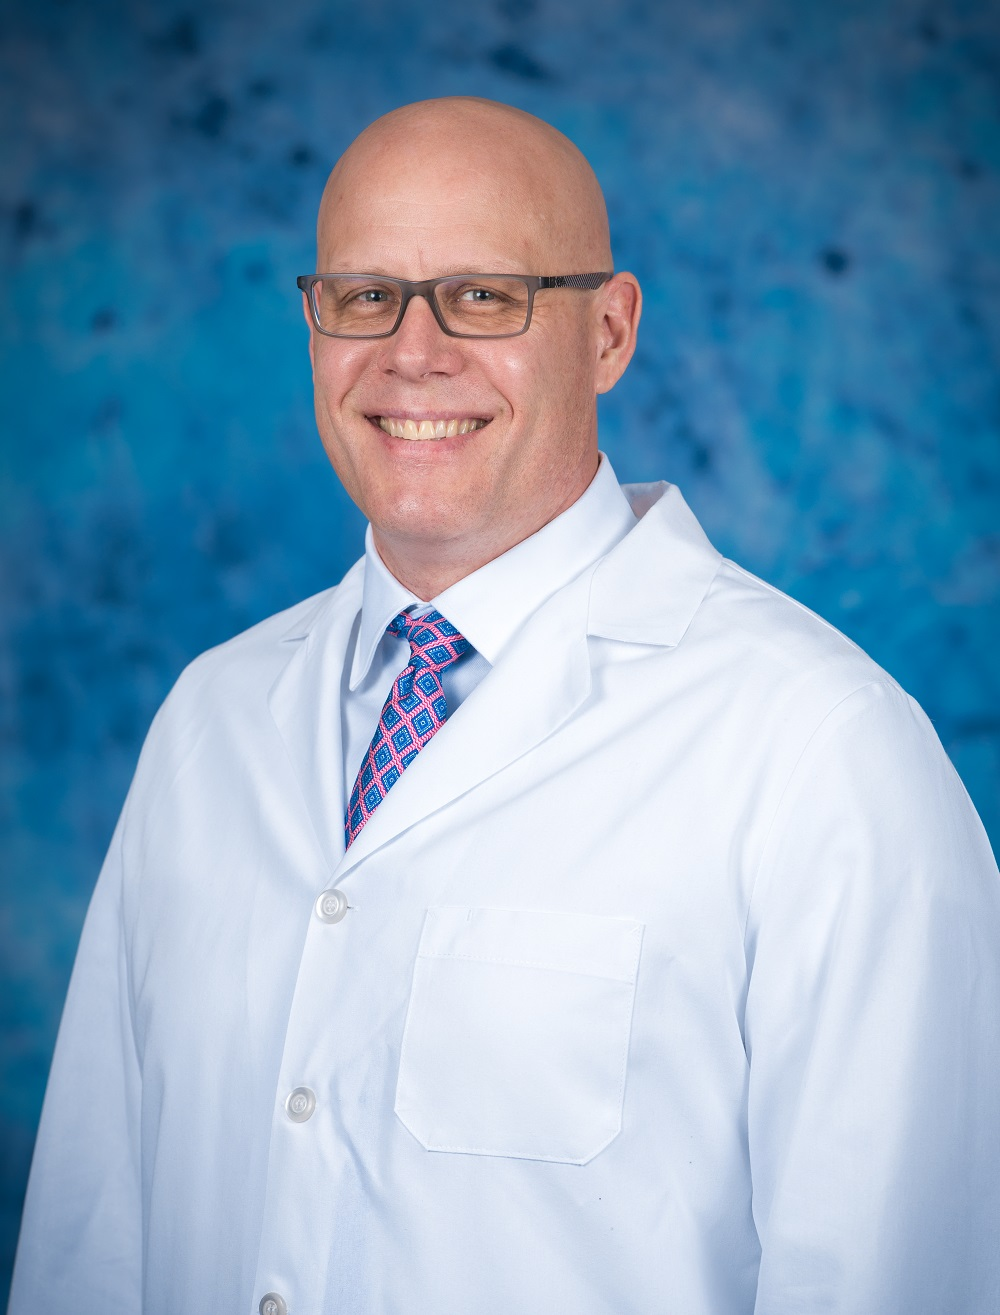 Tyler Gunderson, MD is an orthopedic surgeon and a member of the medical team at Cumberland Orthopedics.